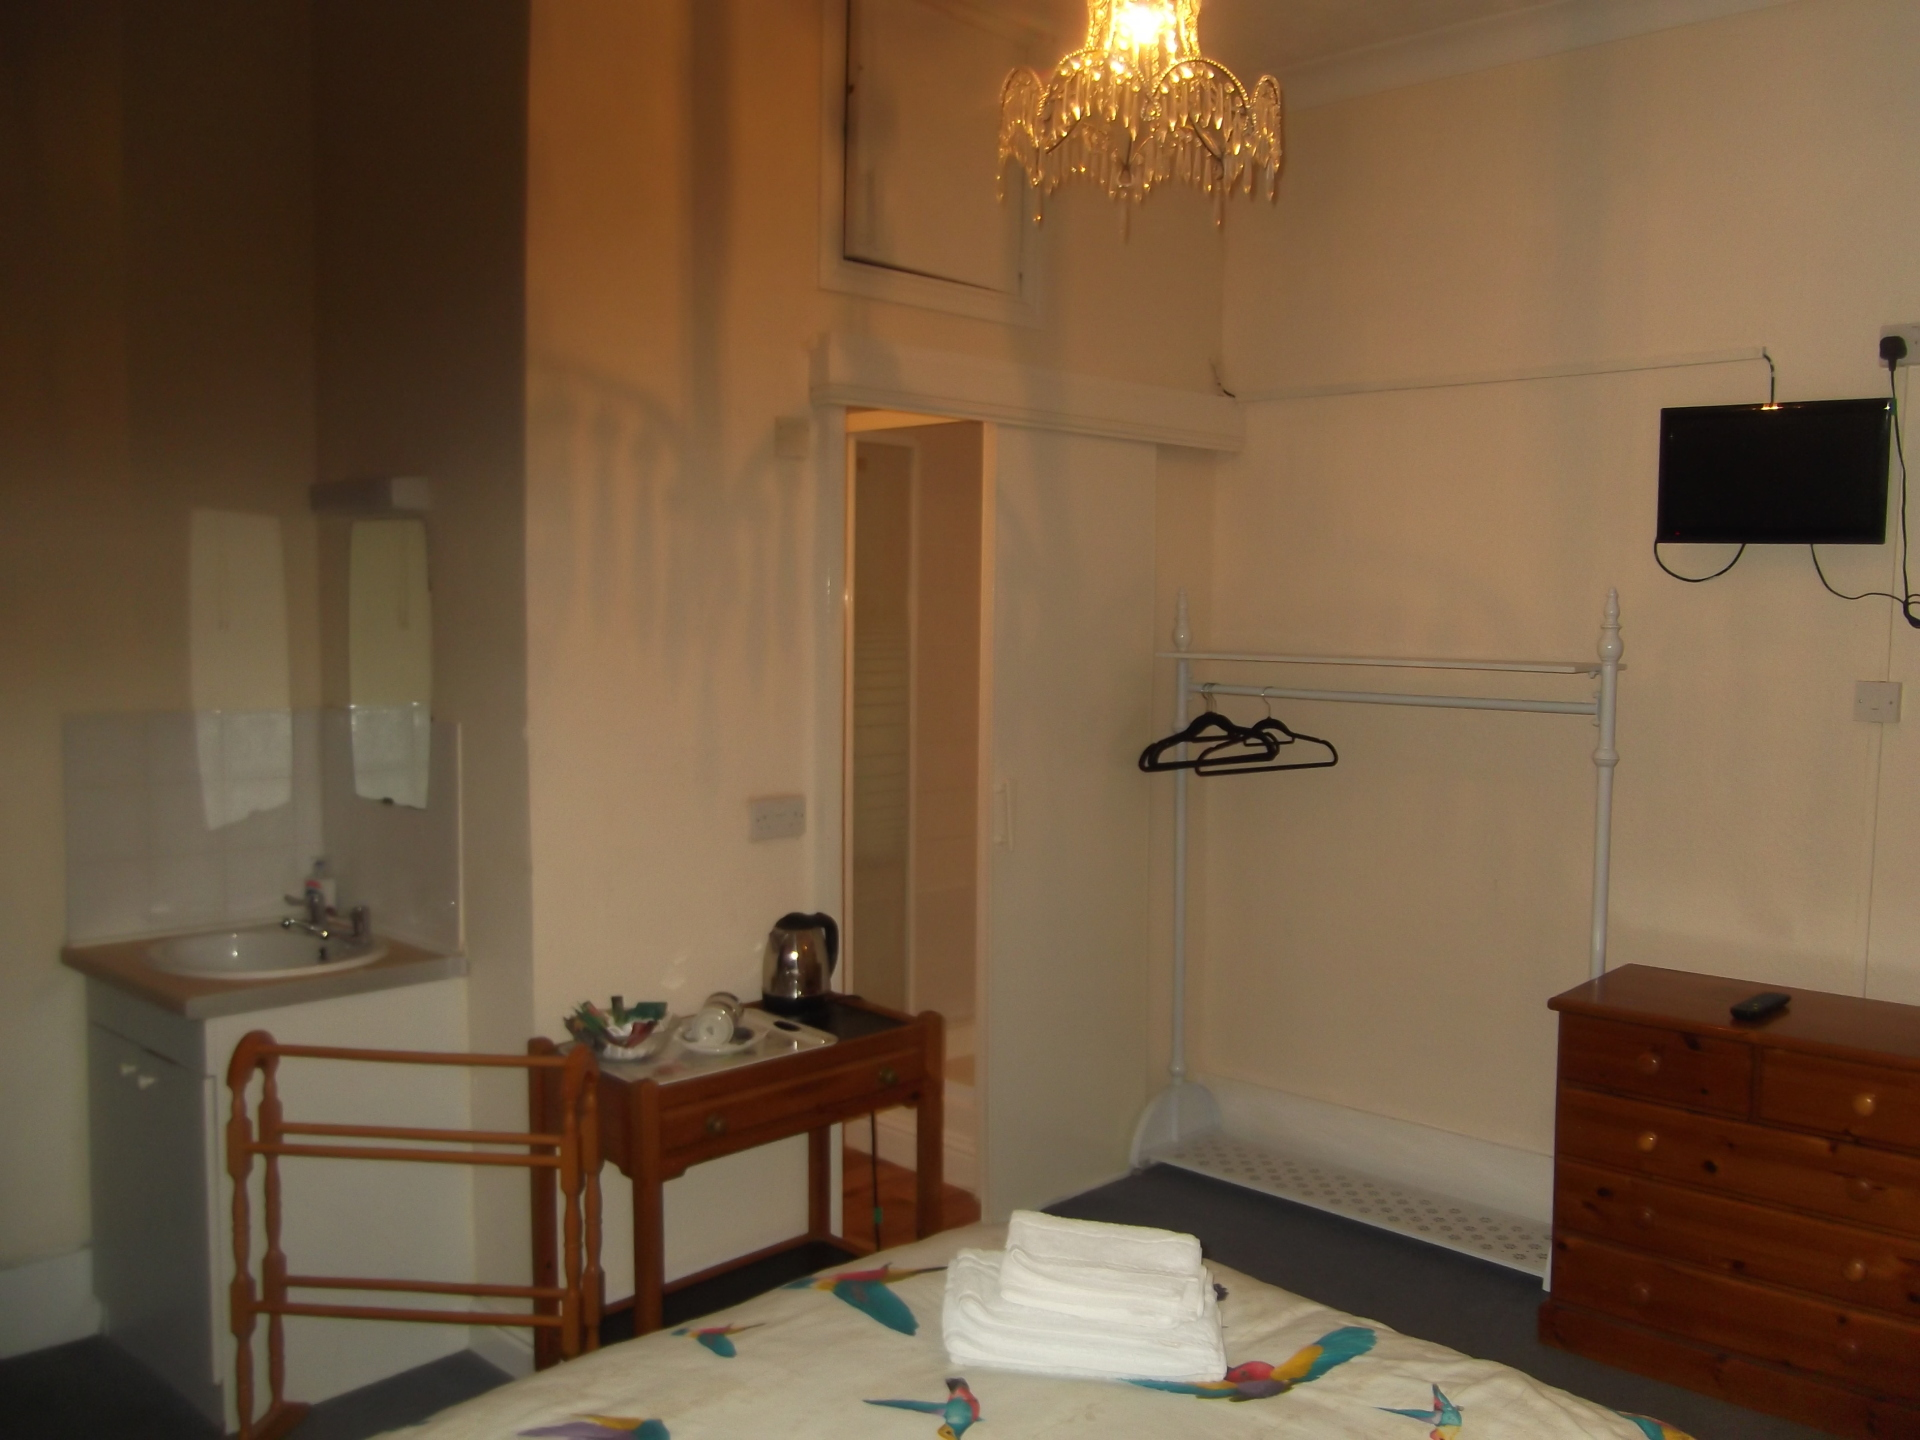 TV, tea and coffee maker and shower